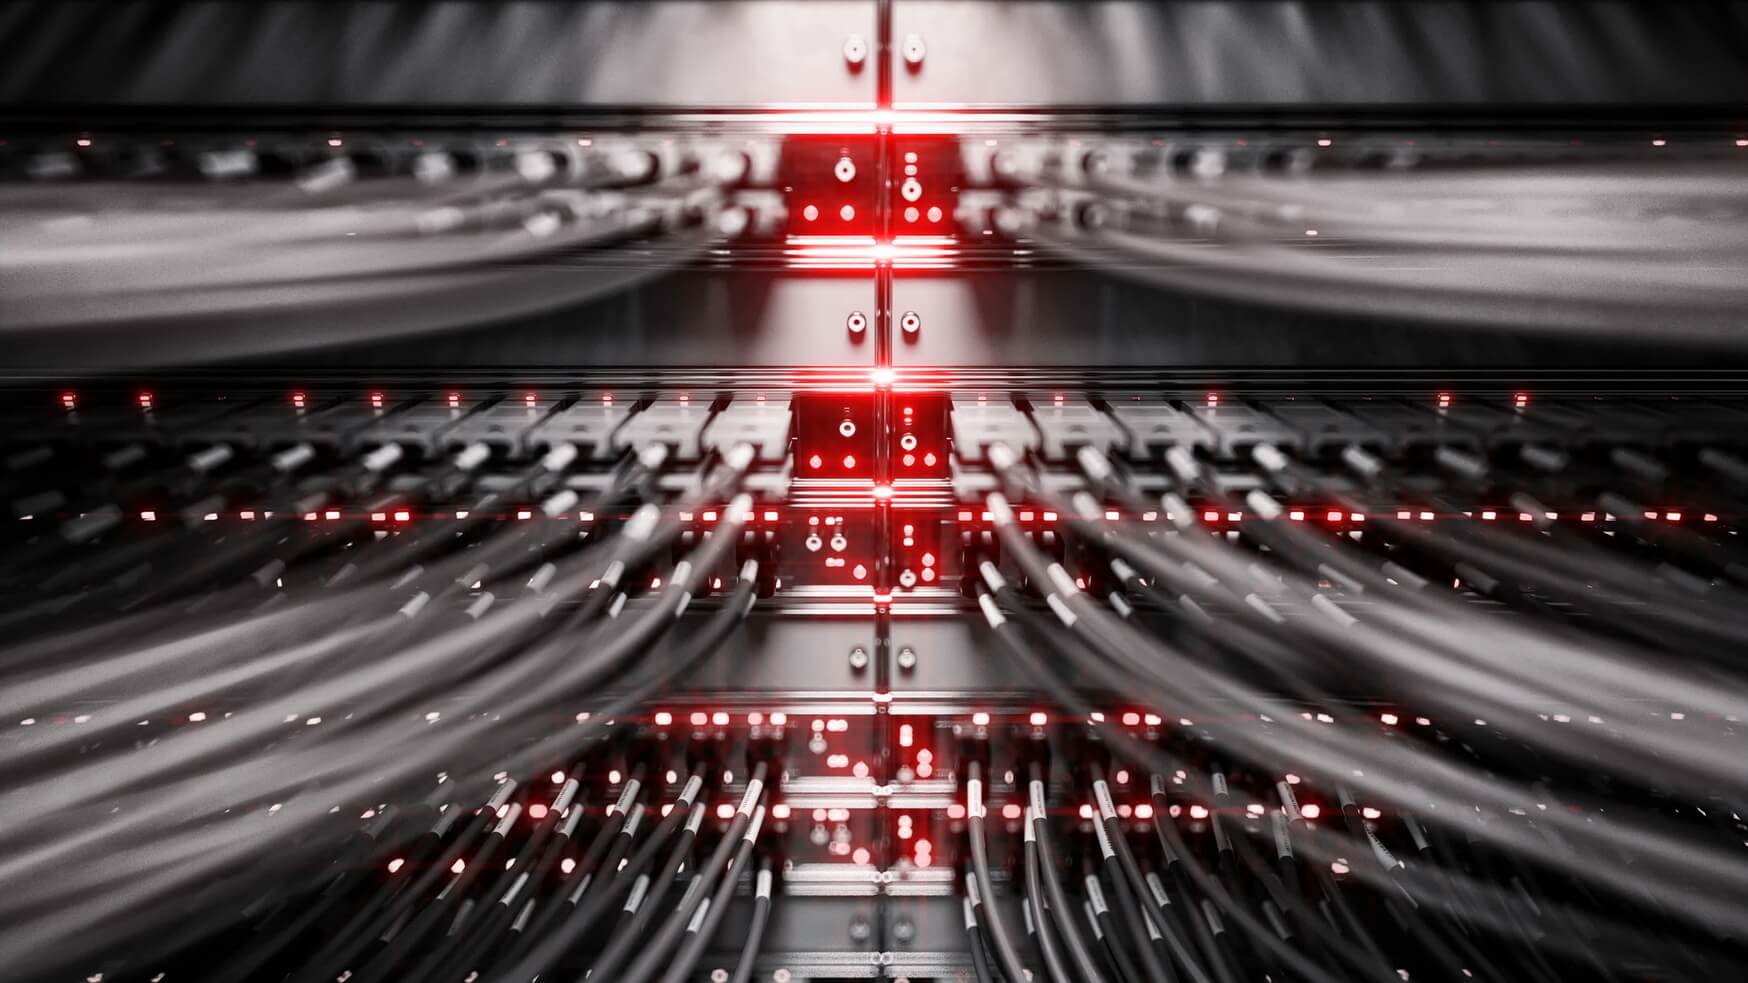 Vollbelastung Netzwerk-Media-Konverter und Ethernet-switches wiederholbar Video. 3D-Rendering